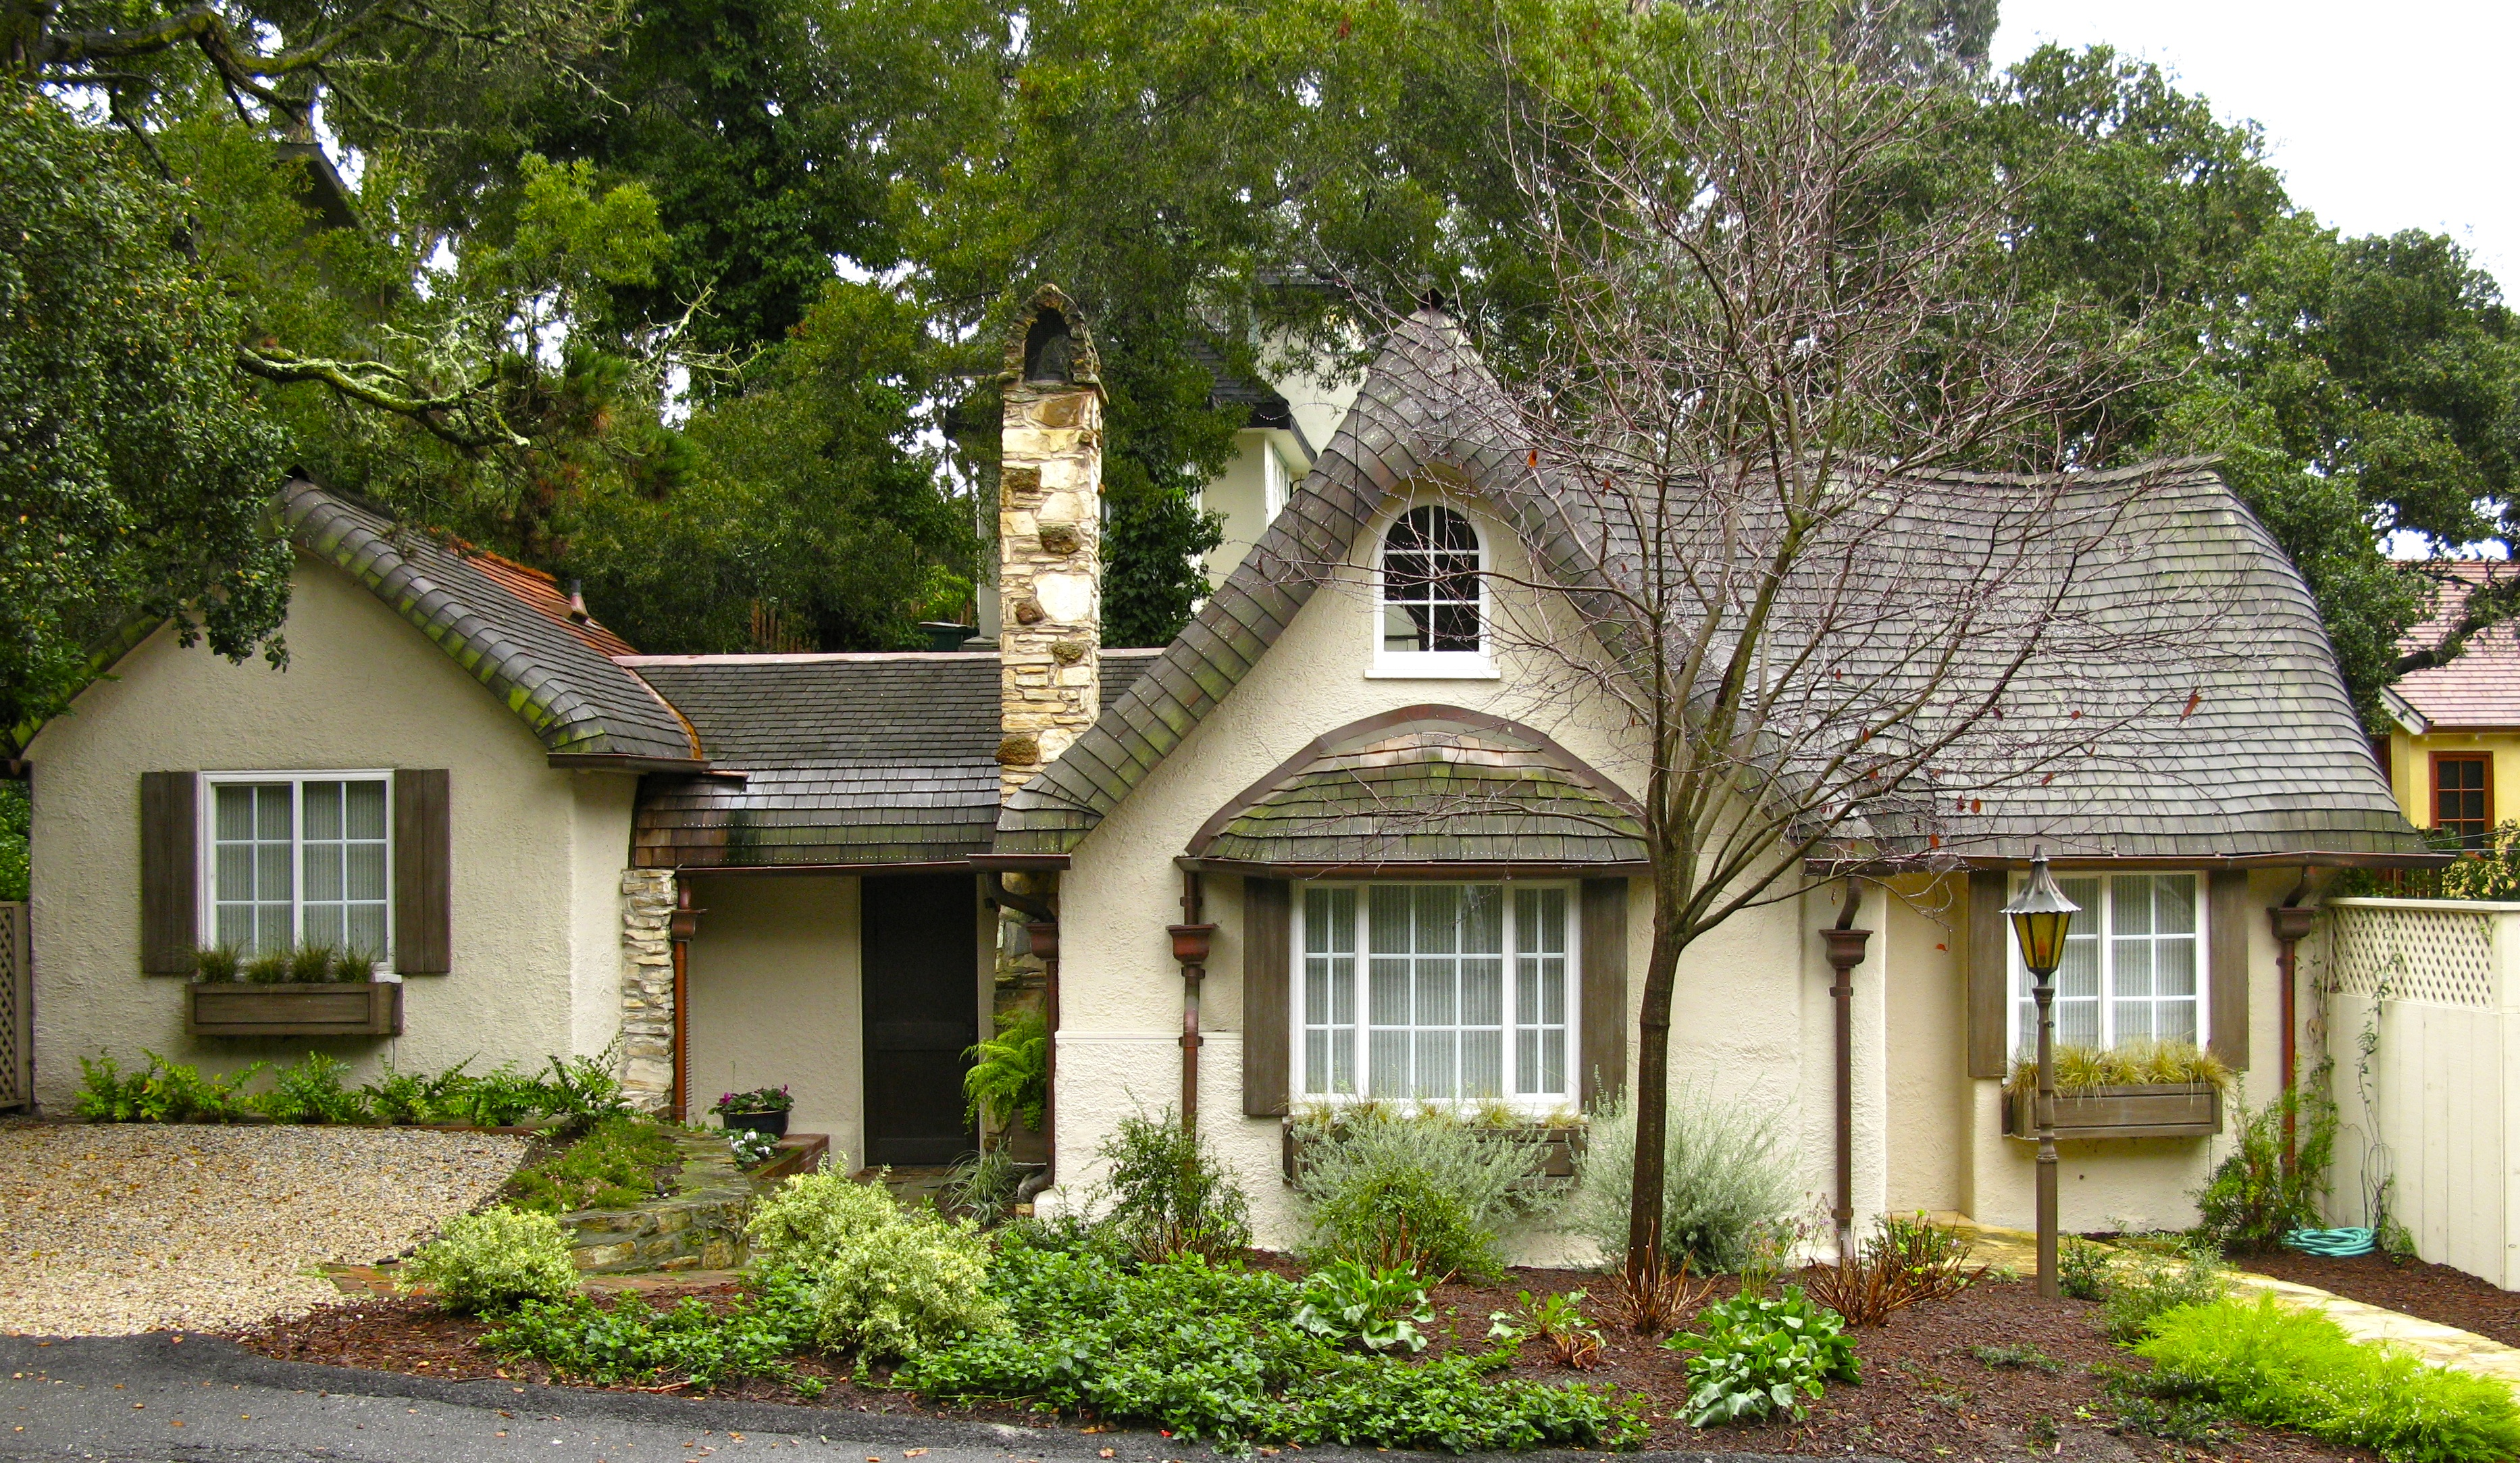 The Grant Wallace Cottage- On Carmel's Historic Register